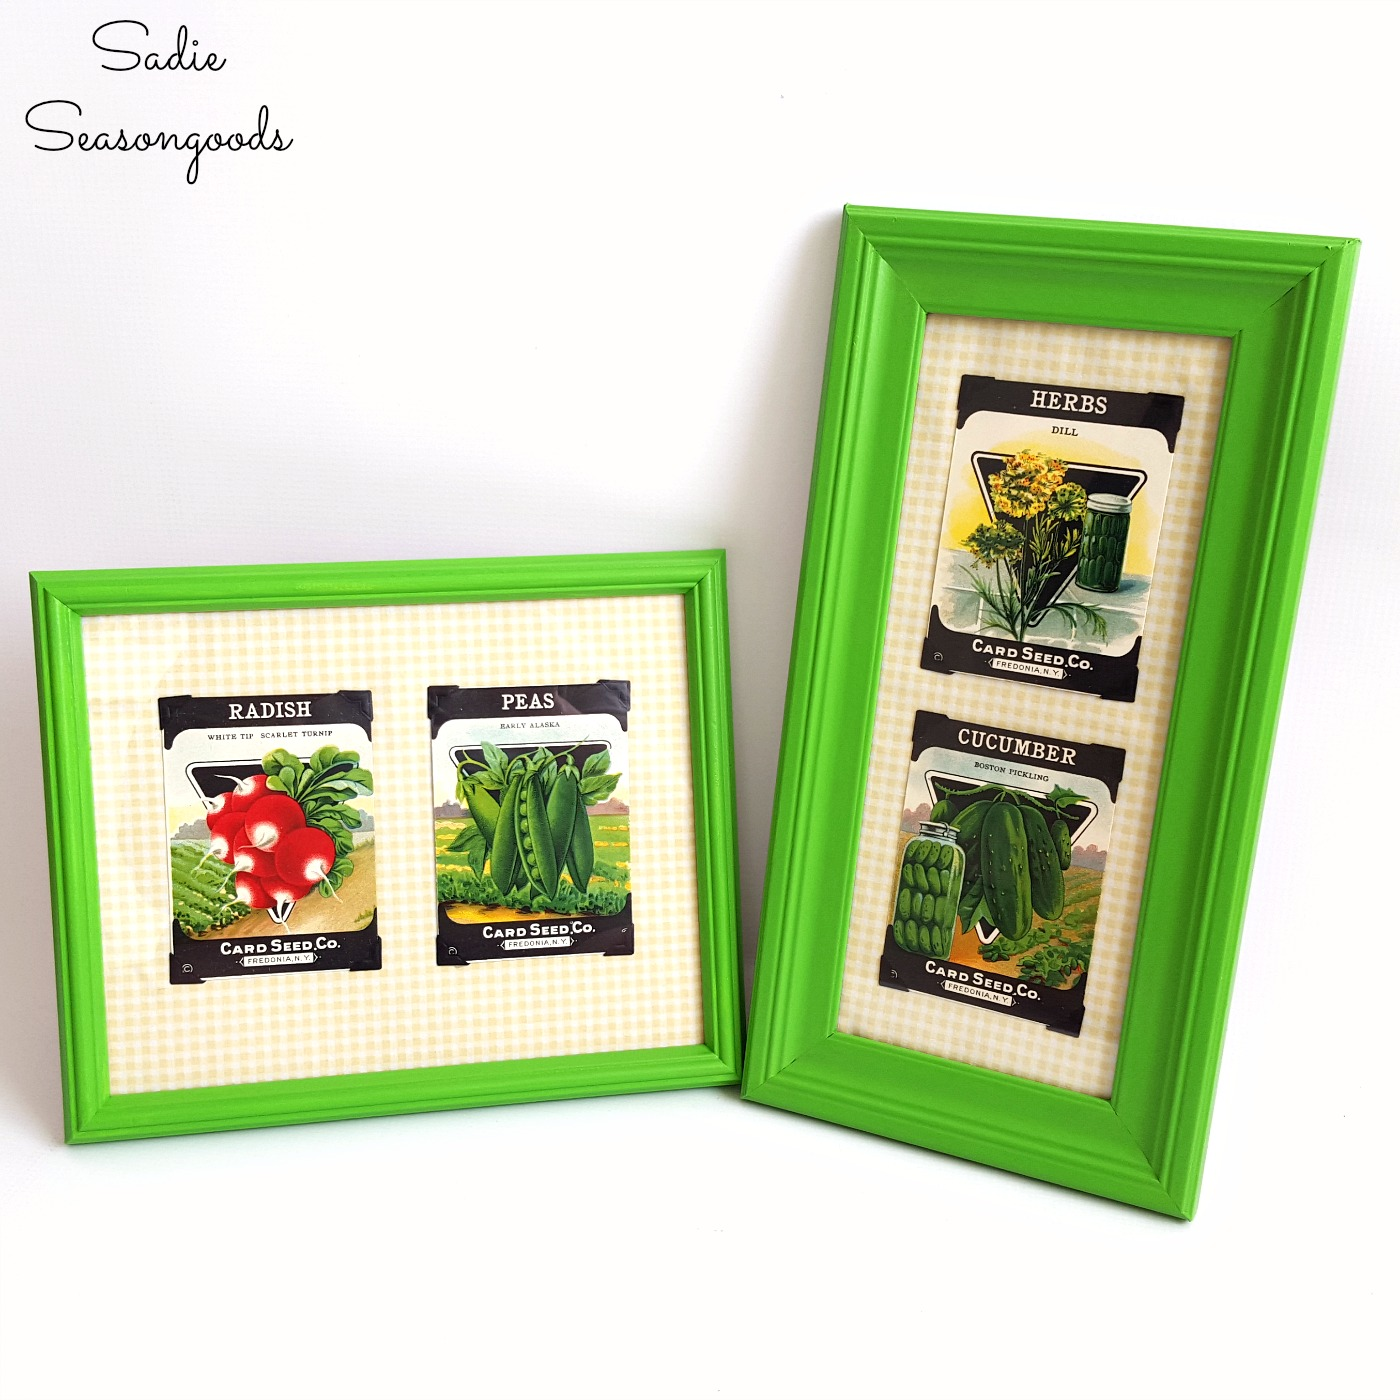 How to decorate a country kitchen or farmhouse kitchen with picture frame ideas using vintage seed packets by Sadie Seasongoods / www.sadieseasongoods.com